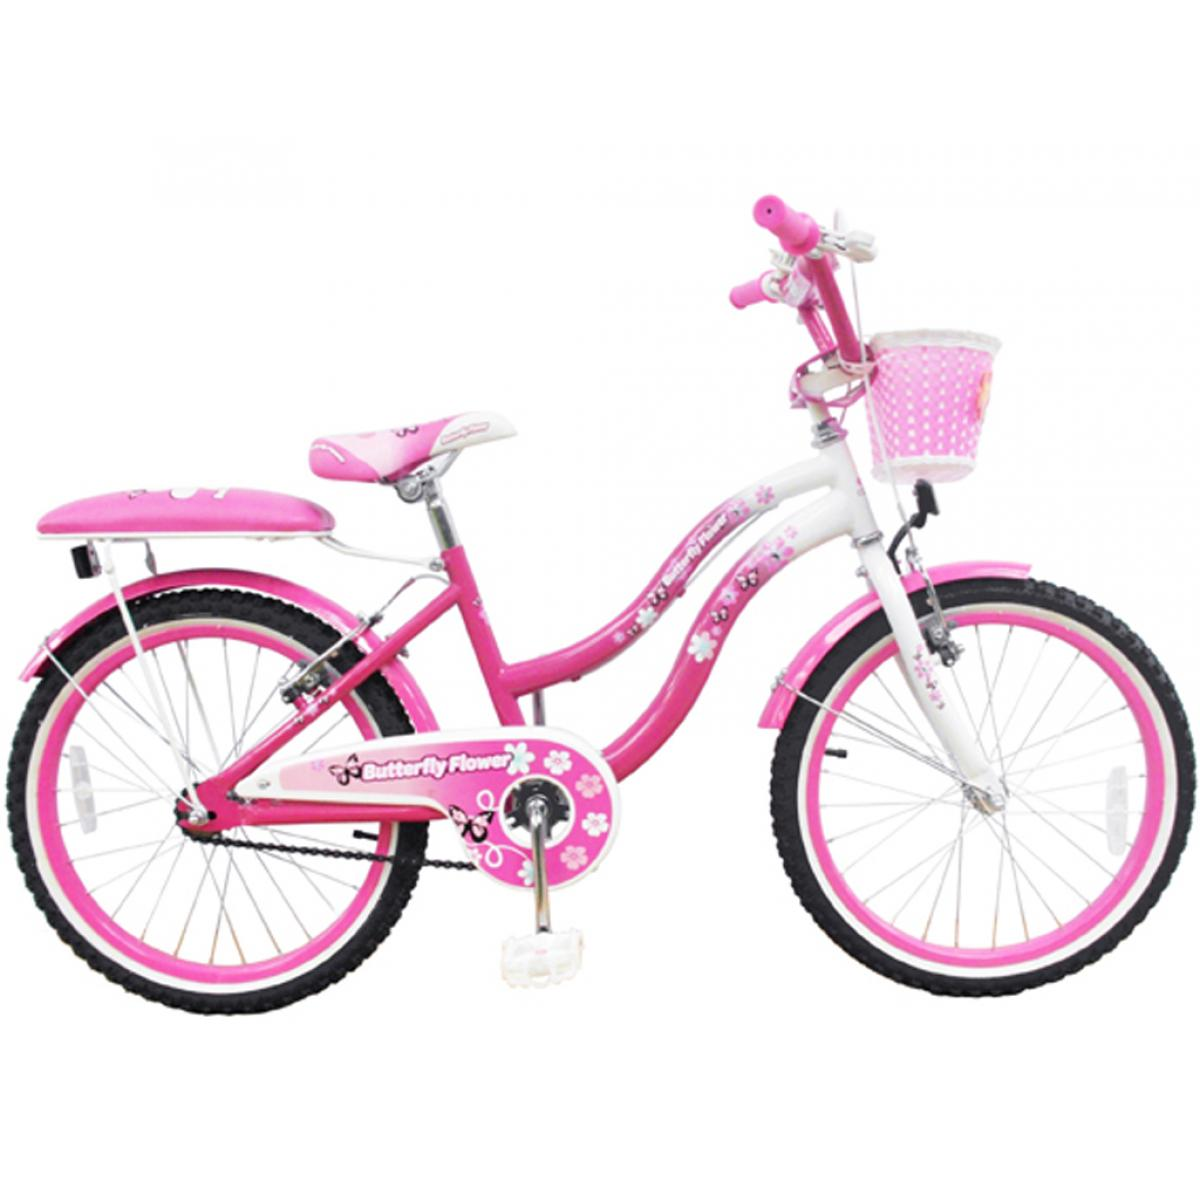 kinderfahrrad schiano butterfly 20 zoll fahrrad kinder 7. Black Bedroom Furniture Sets. Home Design Ideas